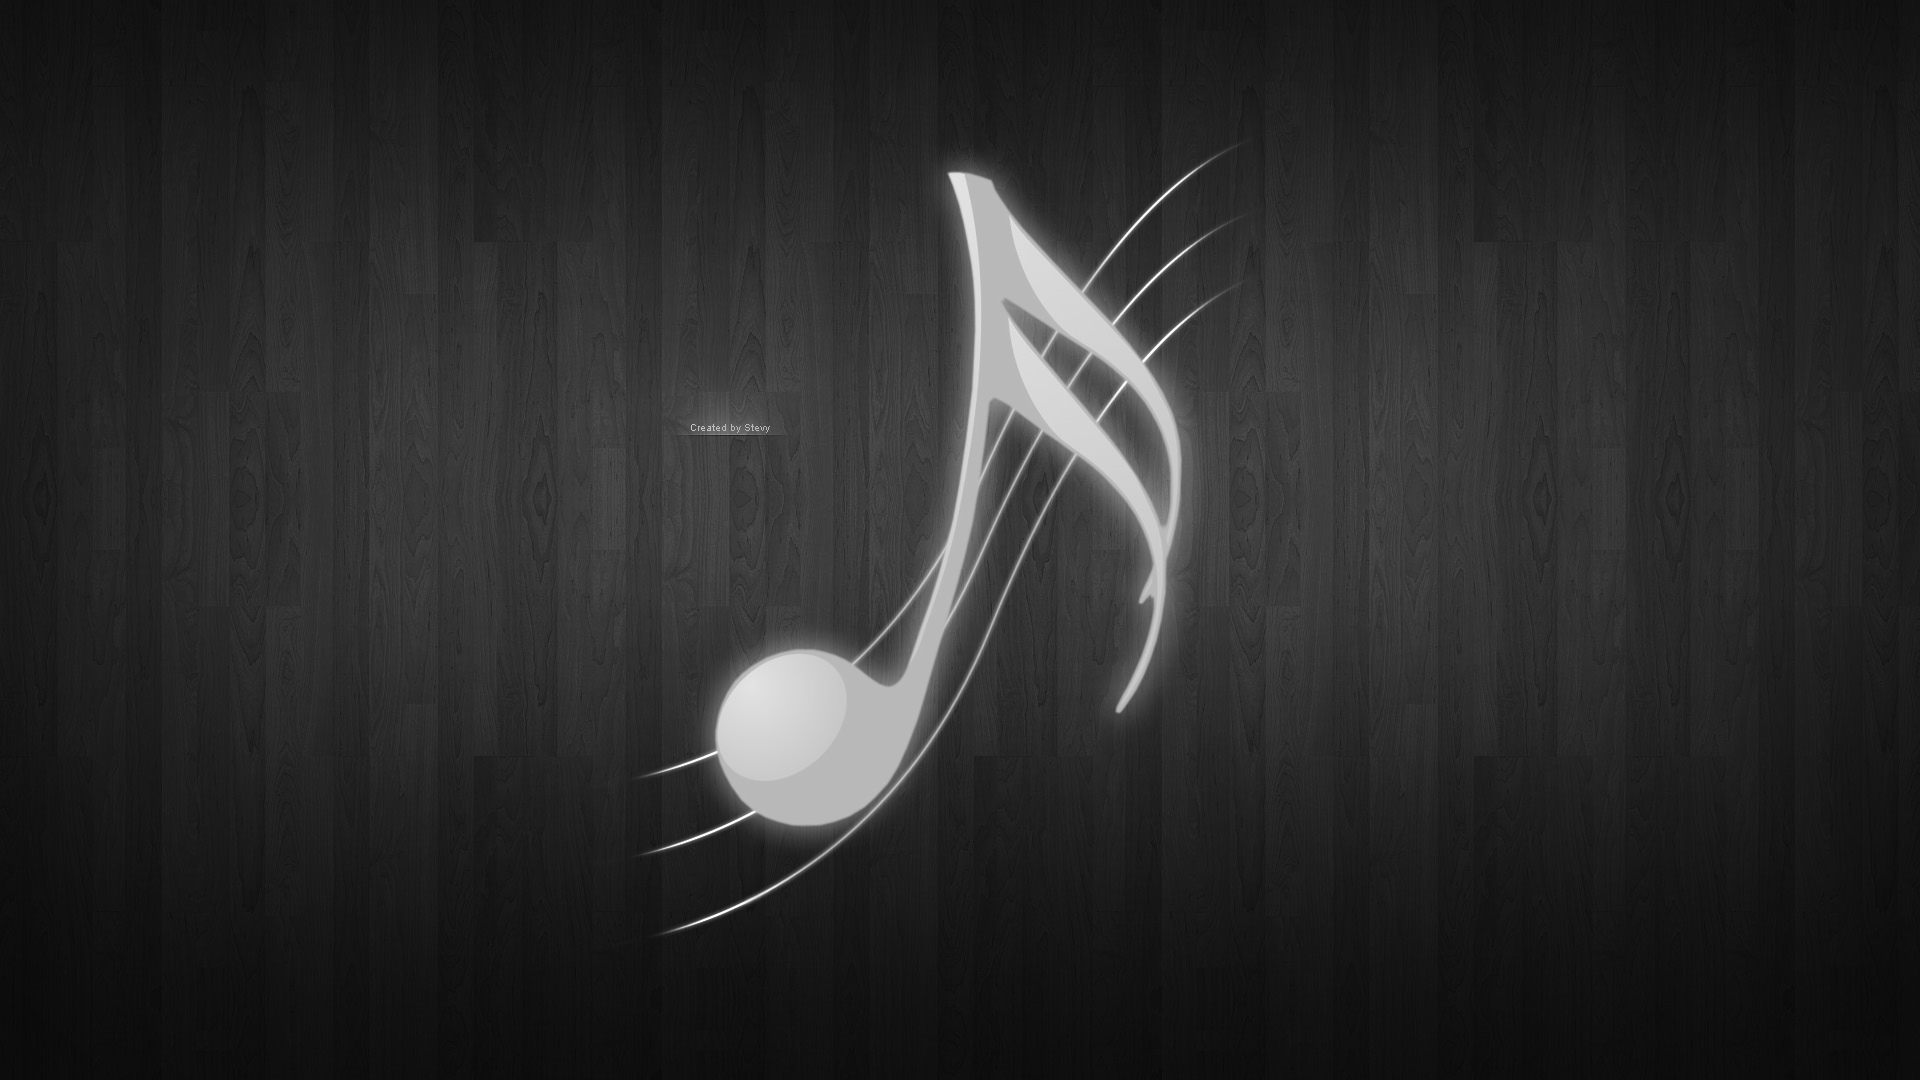 HD Wallpapers Of Music